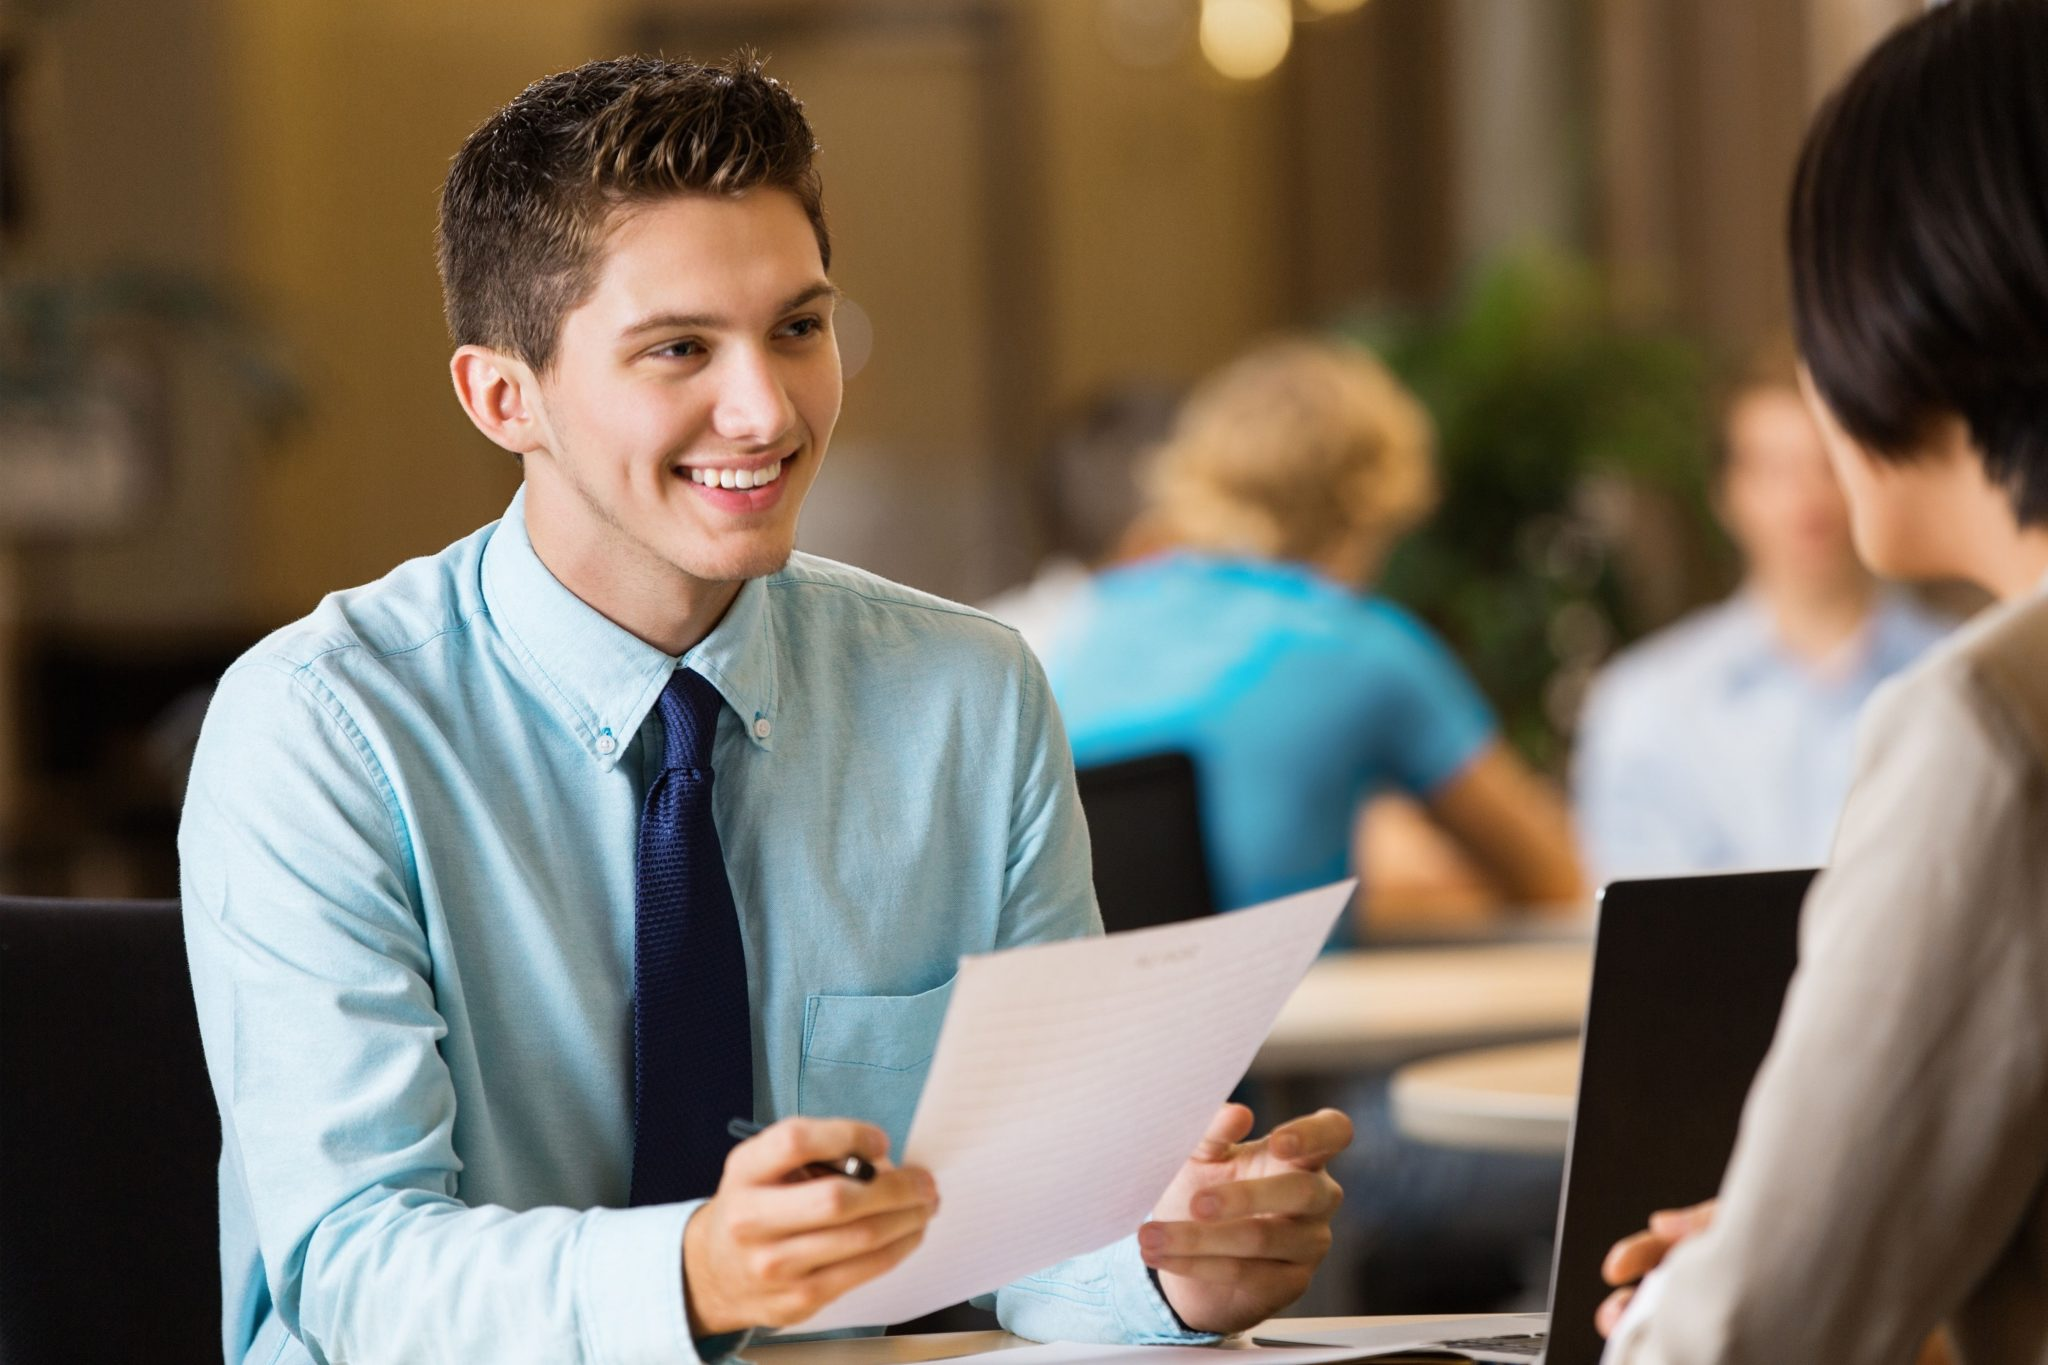 young-professional-college-student-with-resume-at-job-interview-472097889-57e2eab53df78c690f3199b9